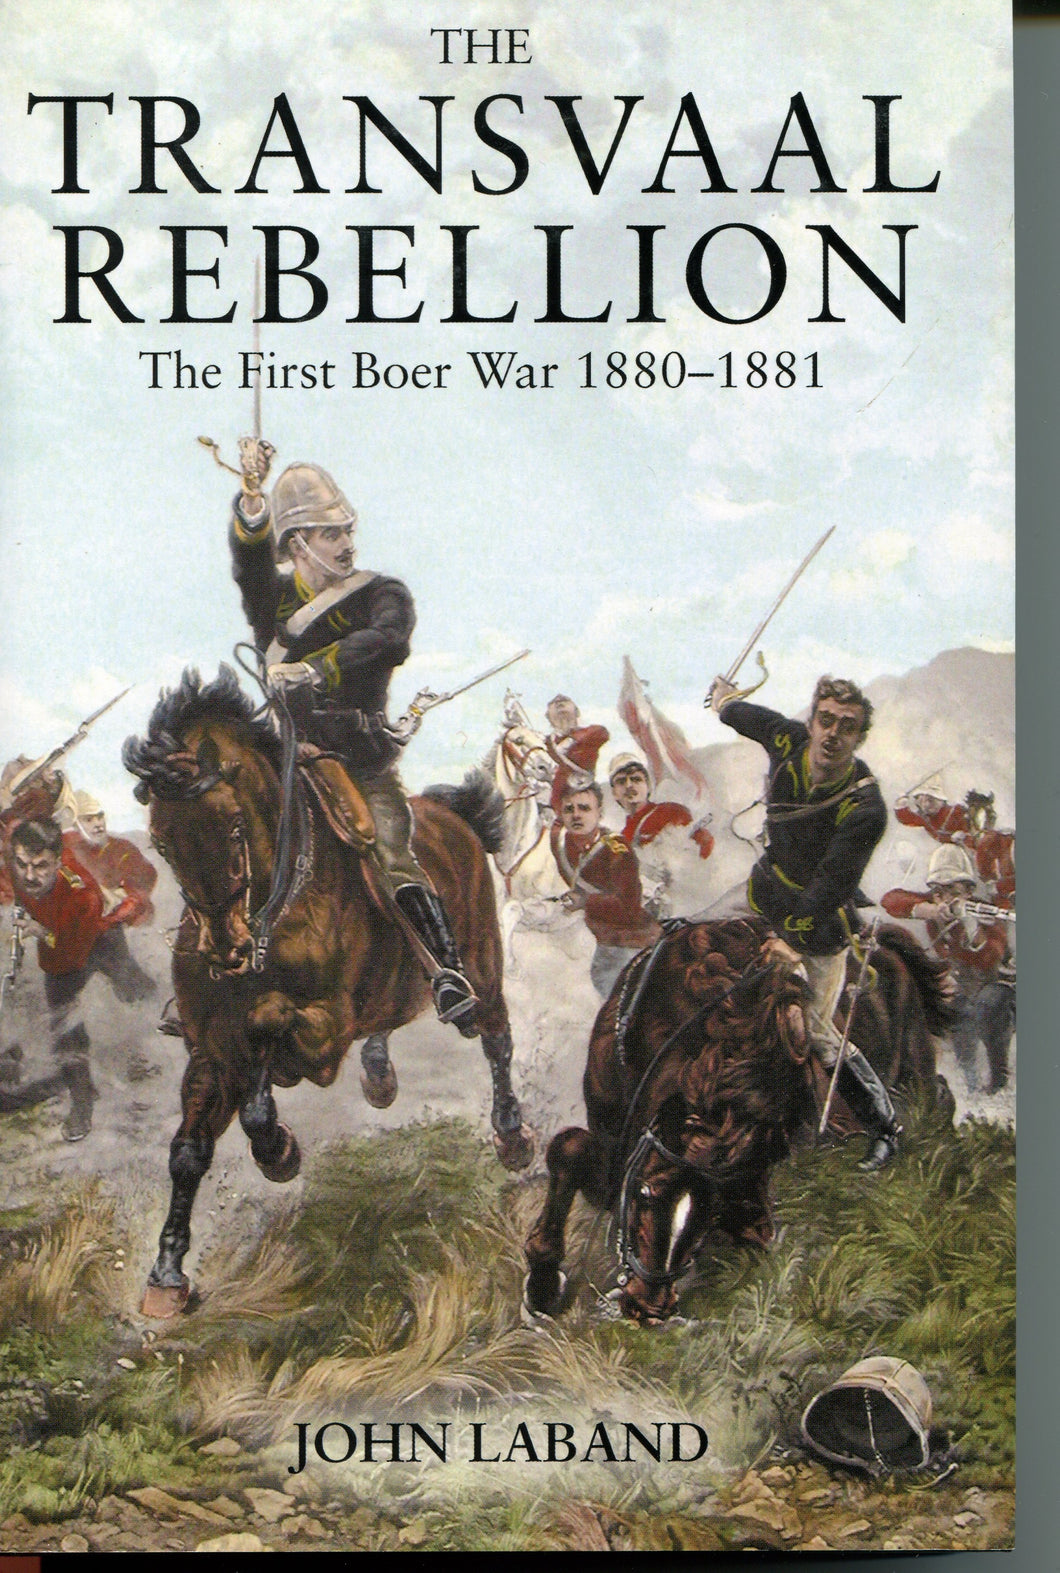 'The Transvaal Rebellion; The First Boer War 1880-1881' By John Laband